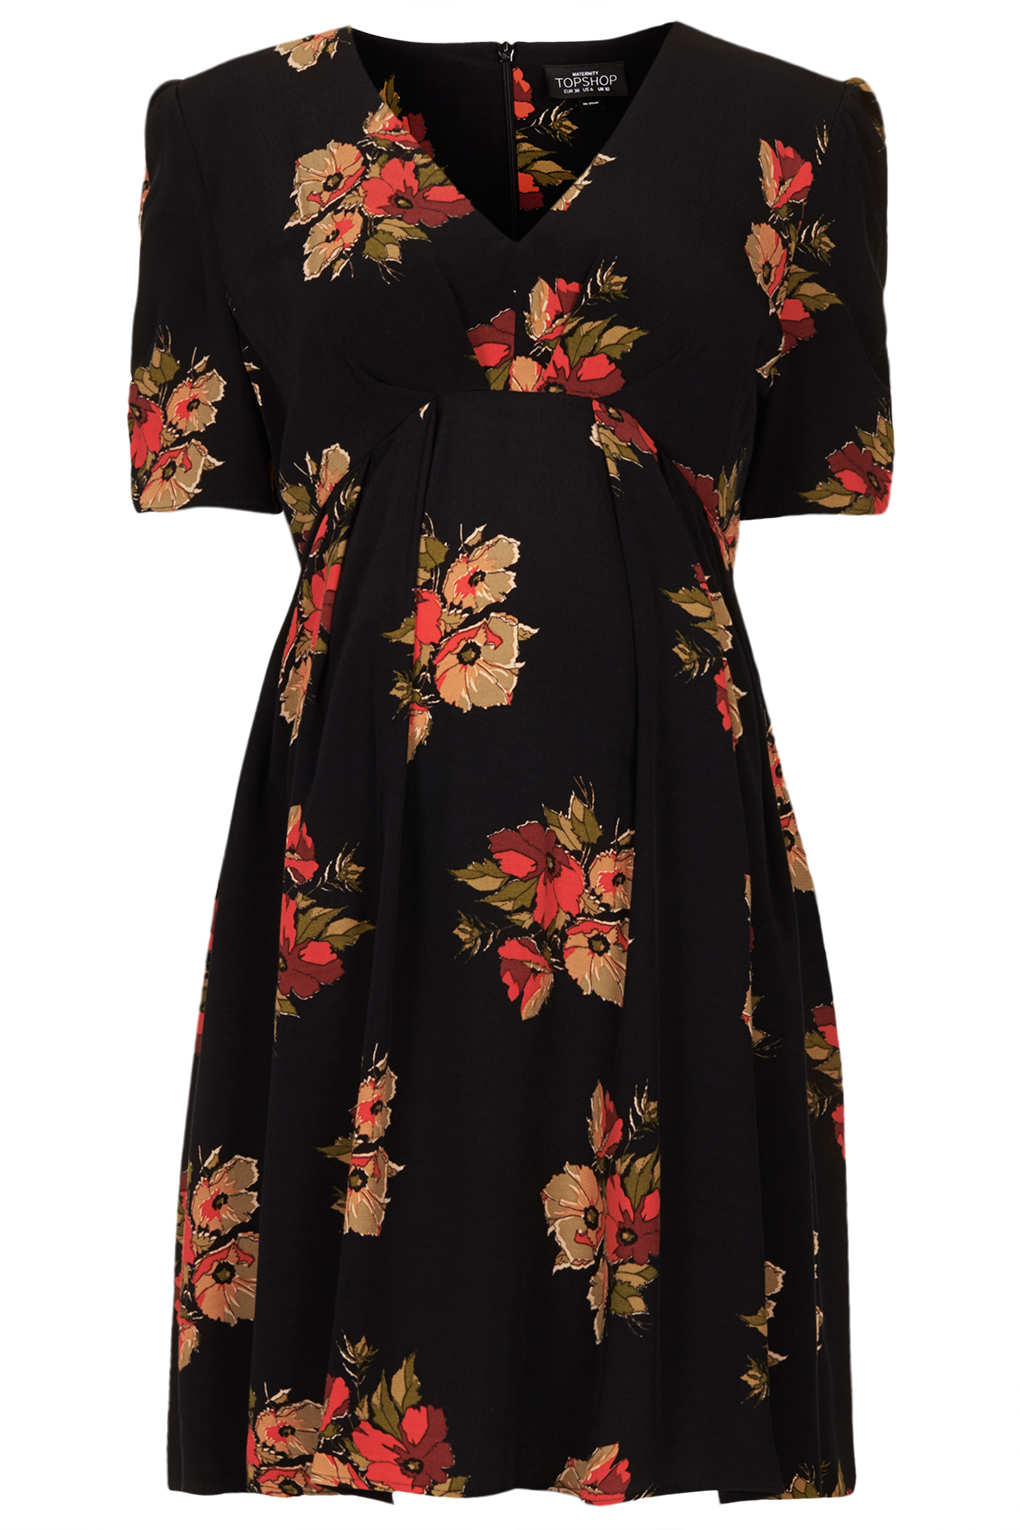 bf6baed72f2f2 TOPSHOP Maternity Autumn Floral Tea Dress in Black - Lyst